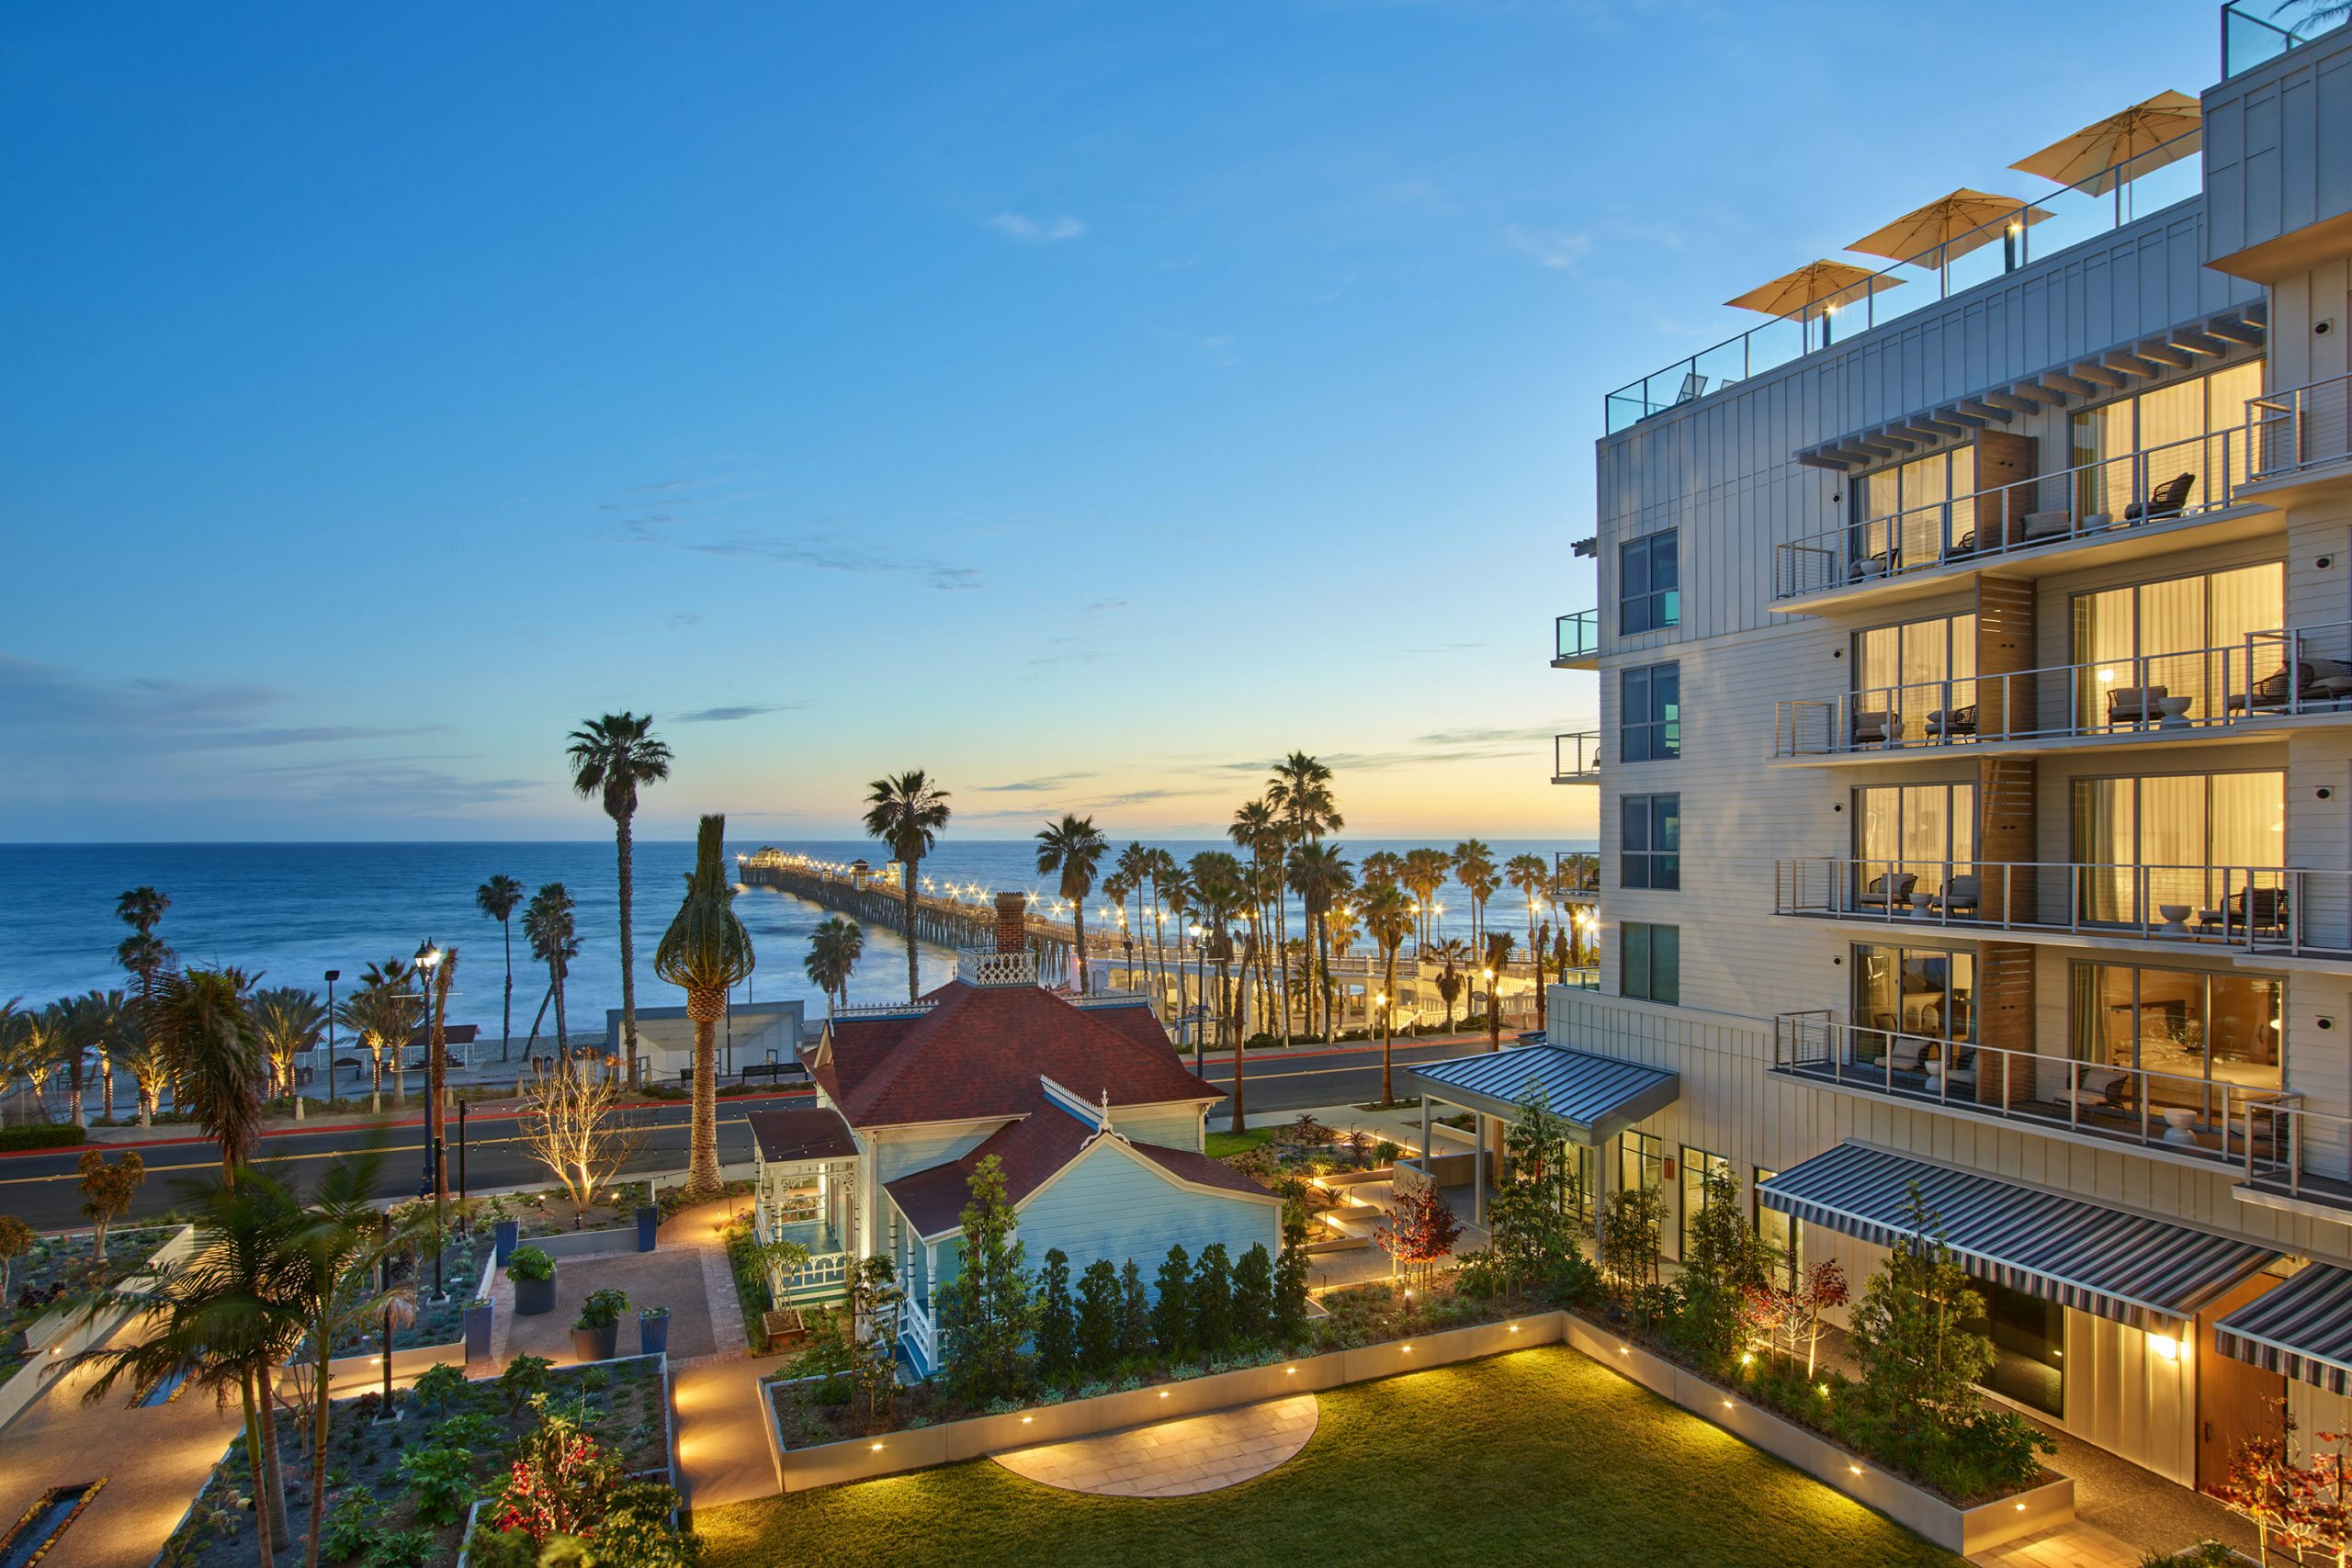 Mission Pacific Hotel in Oceanside